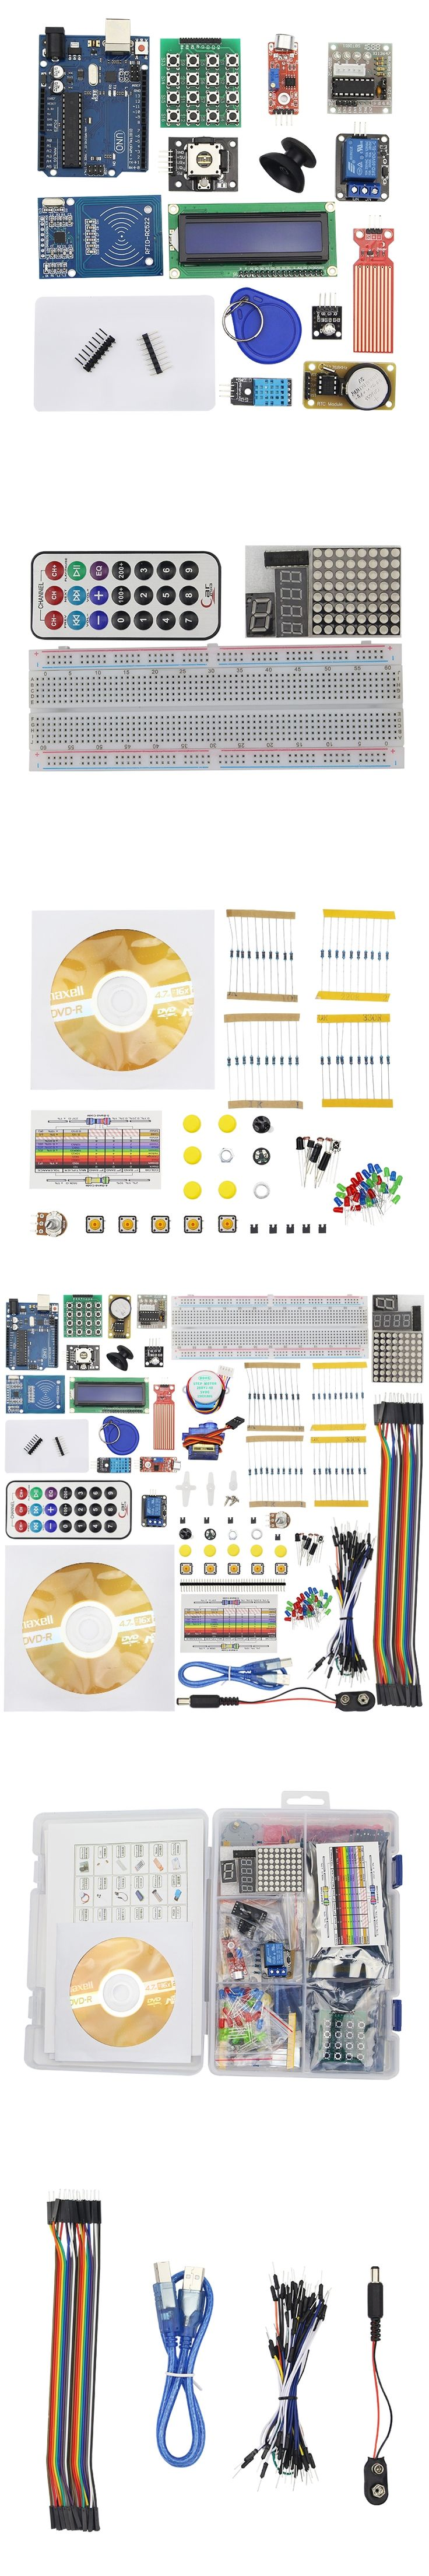 Upgraded Advanced Version Starter Kit the RFID Learn Suite Kit Lcd 1602 + Flame Sensor with Retail Box for Arduino UNO R3